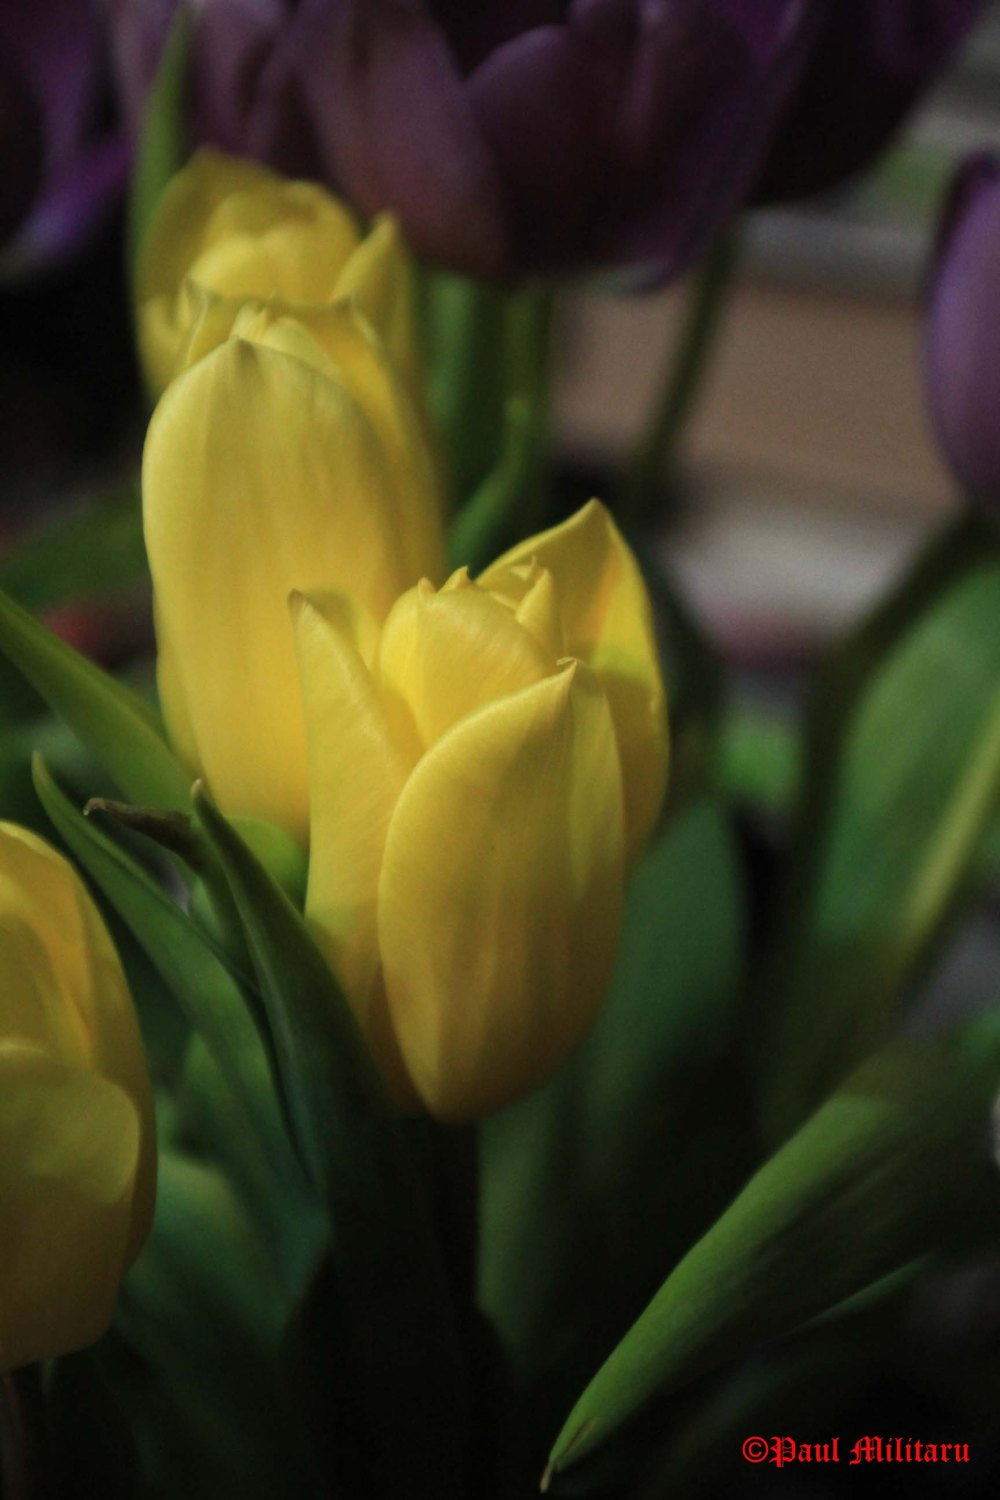 1- yellow tulips